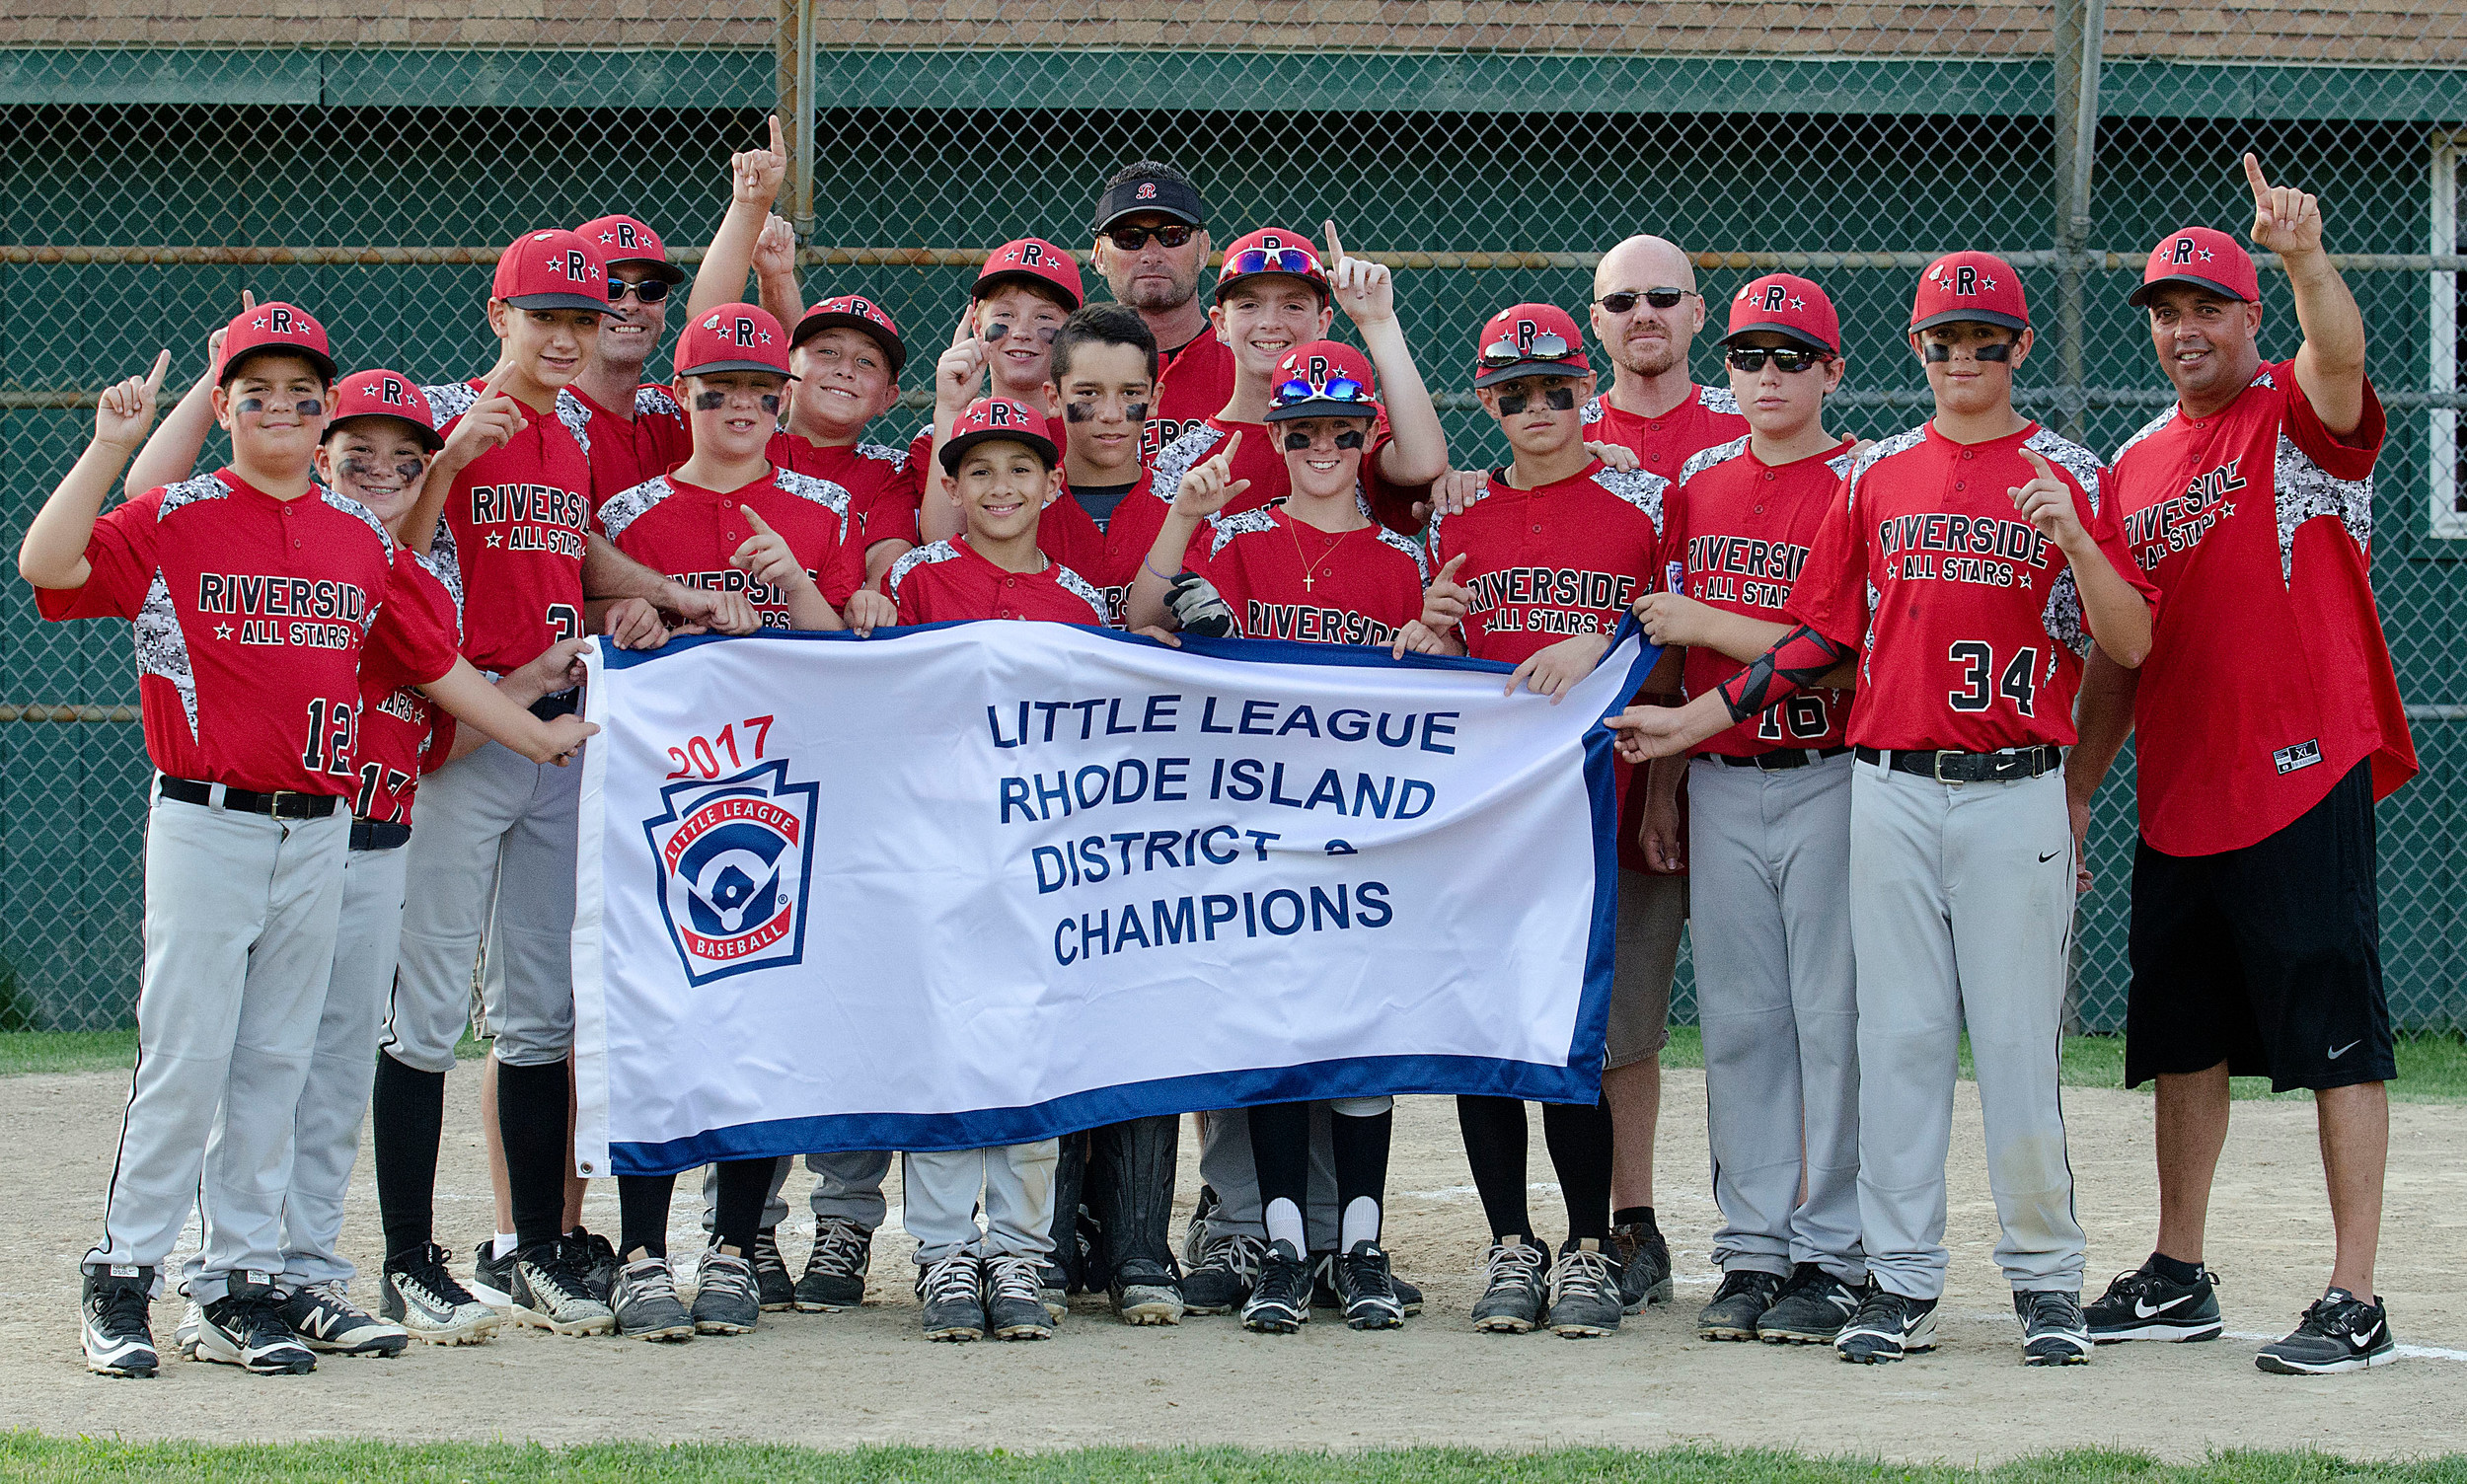 The Riverside Little League 11-12 Major Baseball Division All-Stars celebrate after winning the District 2 title following a 2-0 victory over Bristol on July 16.